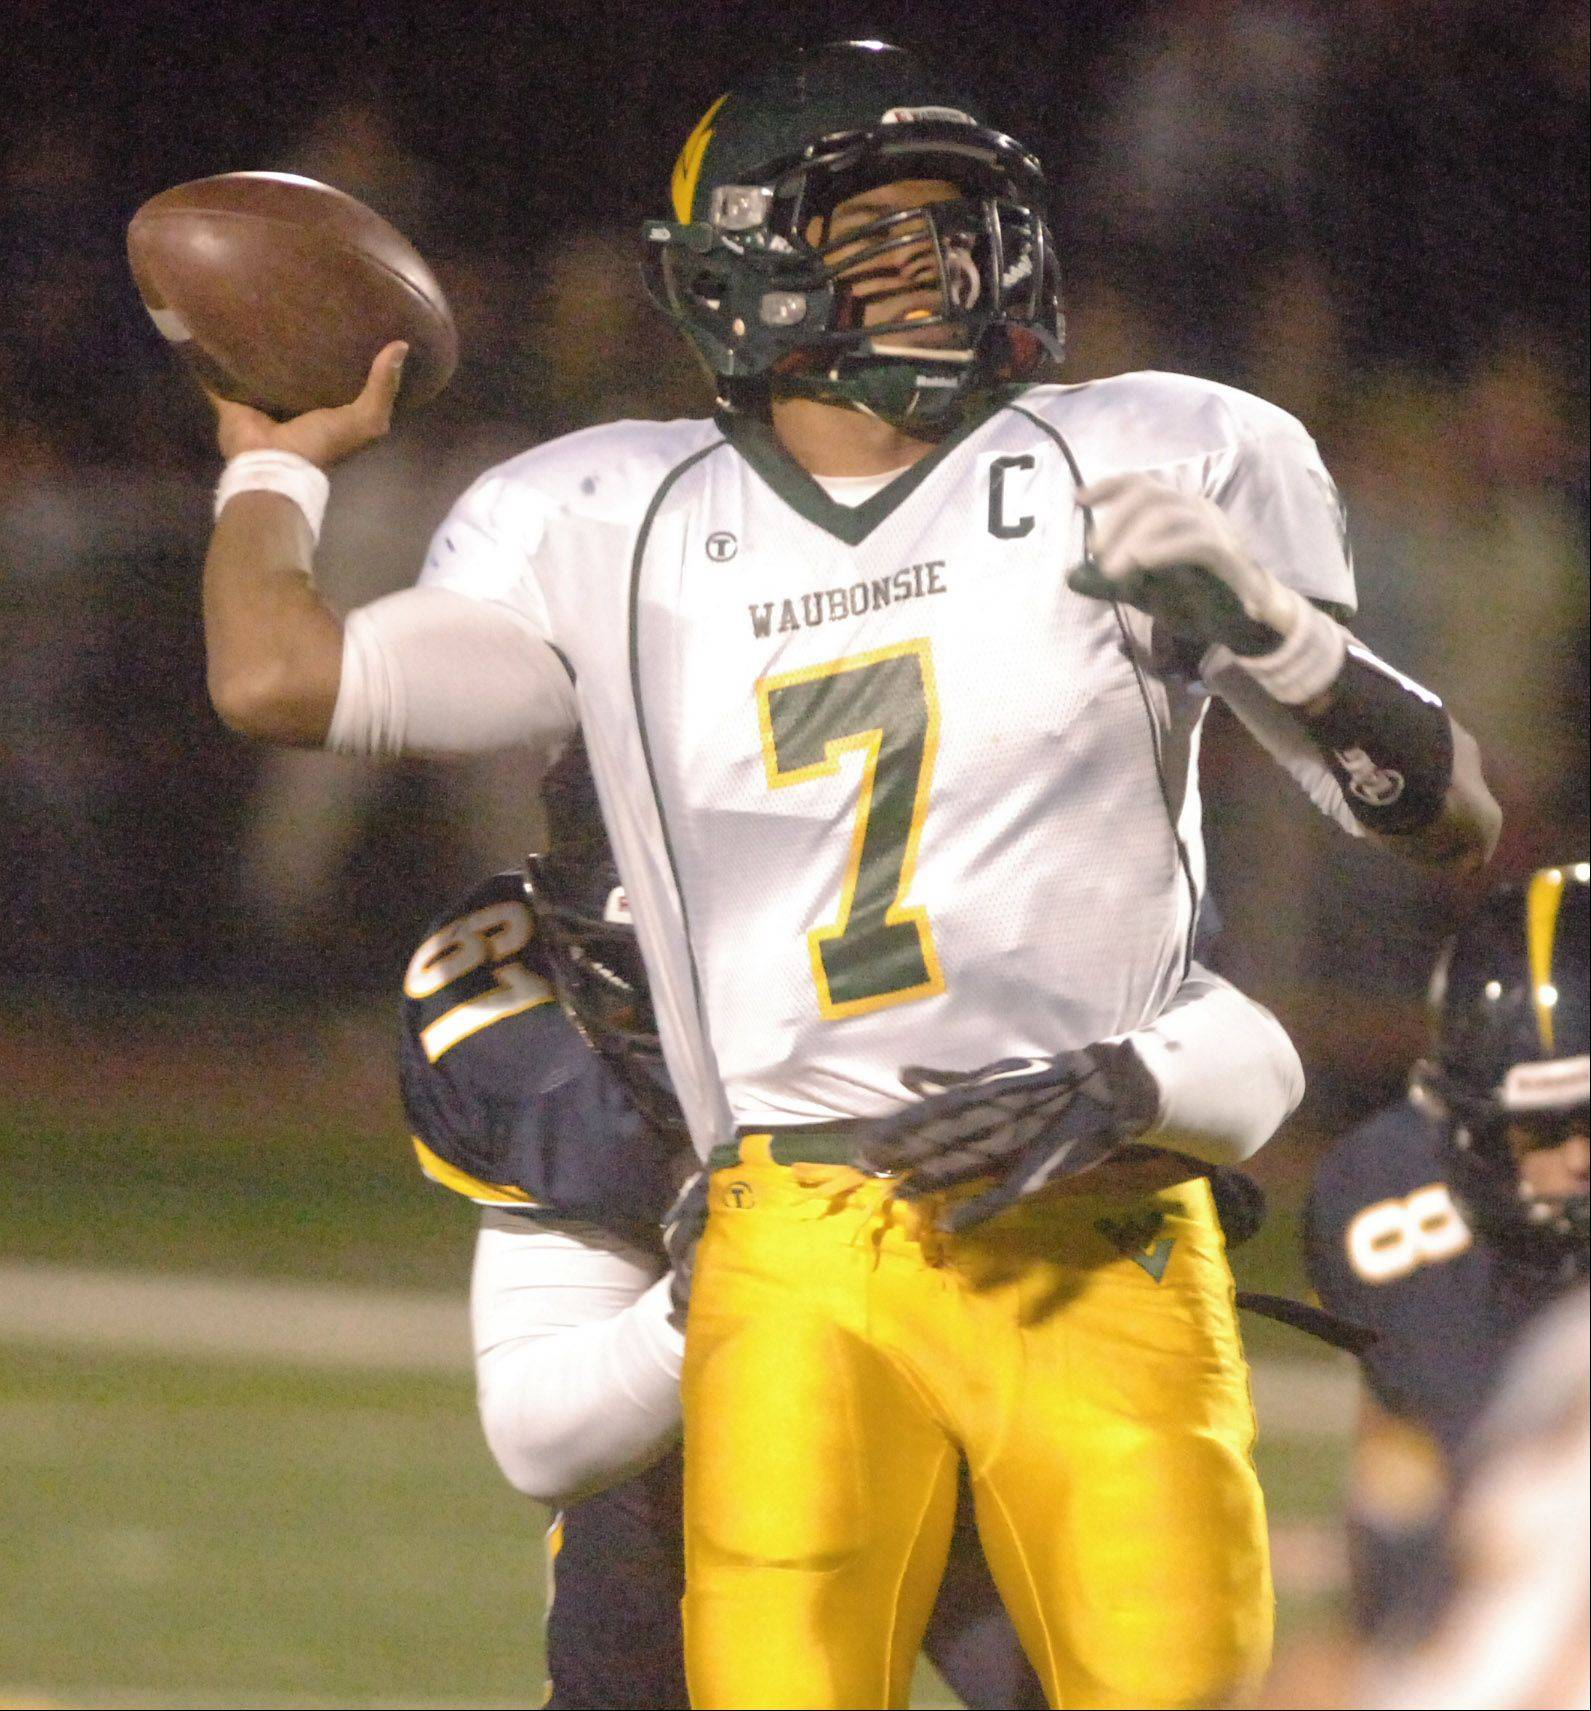 Quarterback Dylan Warden hopes to lead Waubonsie Valley to a bounce-back win against East Aurora on Friday night in Aurora.